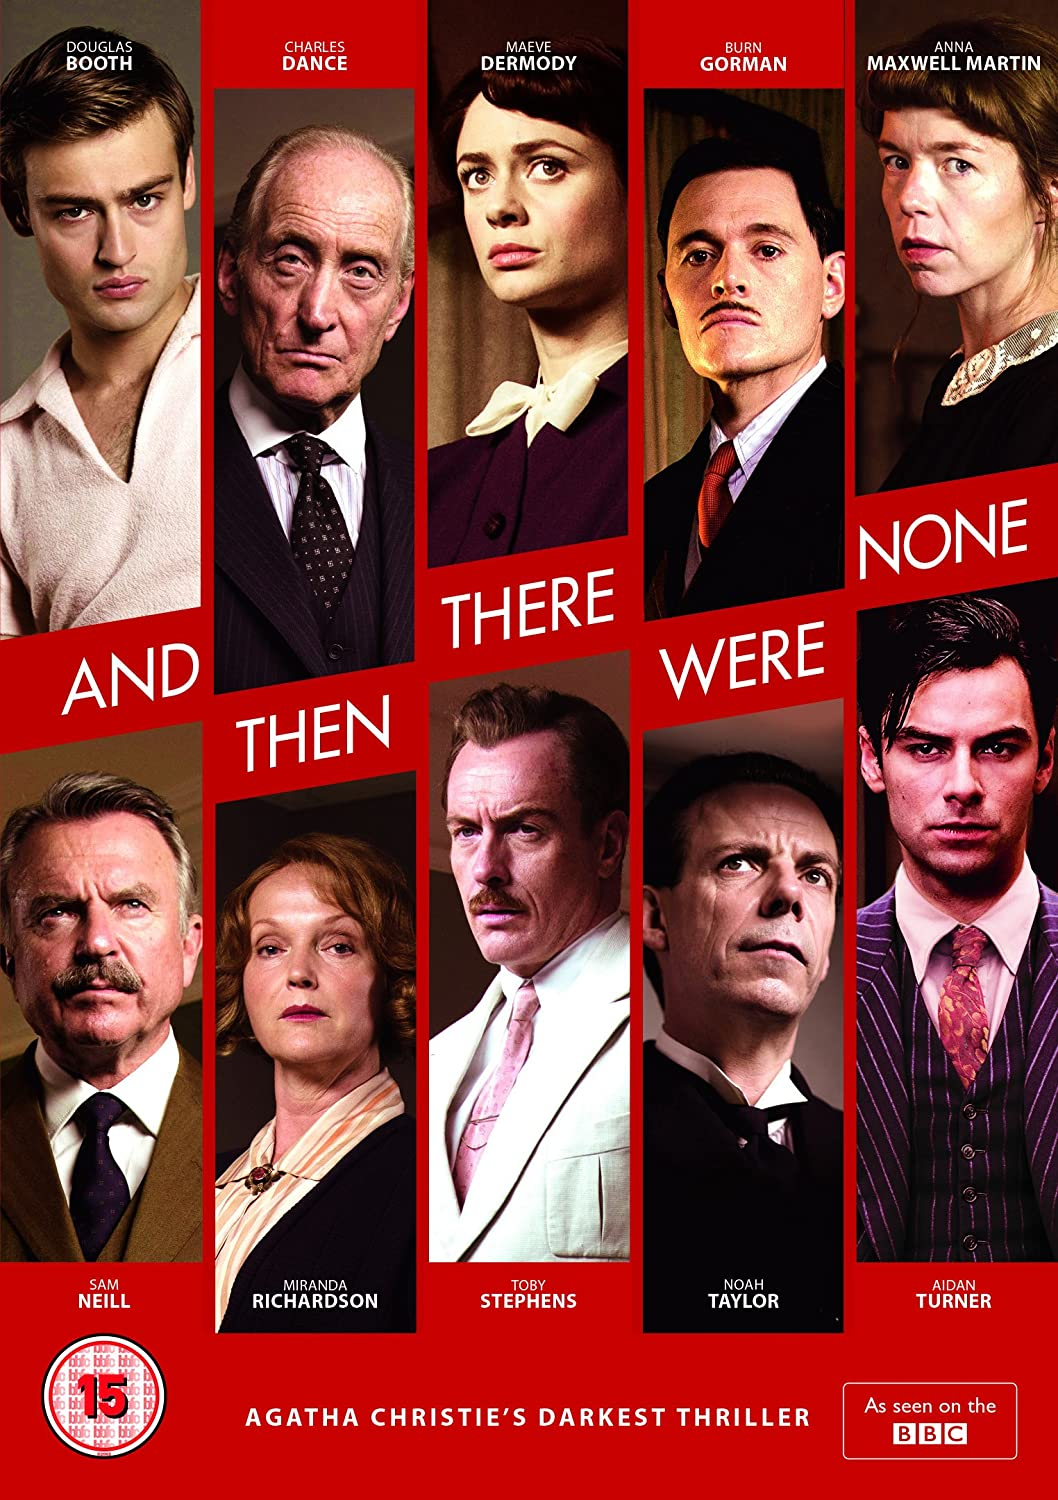 an analysis of agatha christies book and then they were none Agatha christie, and then there were none more about this story ten strangers arrive on an island invited by an unknown host each of them has a secret to hide and a crime for which they must pay  it was performed in 1943 under the book's original uk title, and the ending was changed as both she and the producers were concerned about.